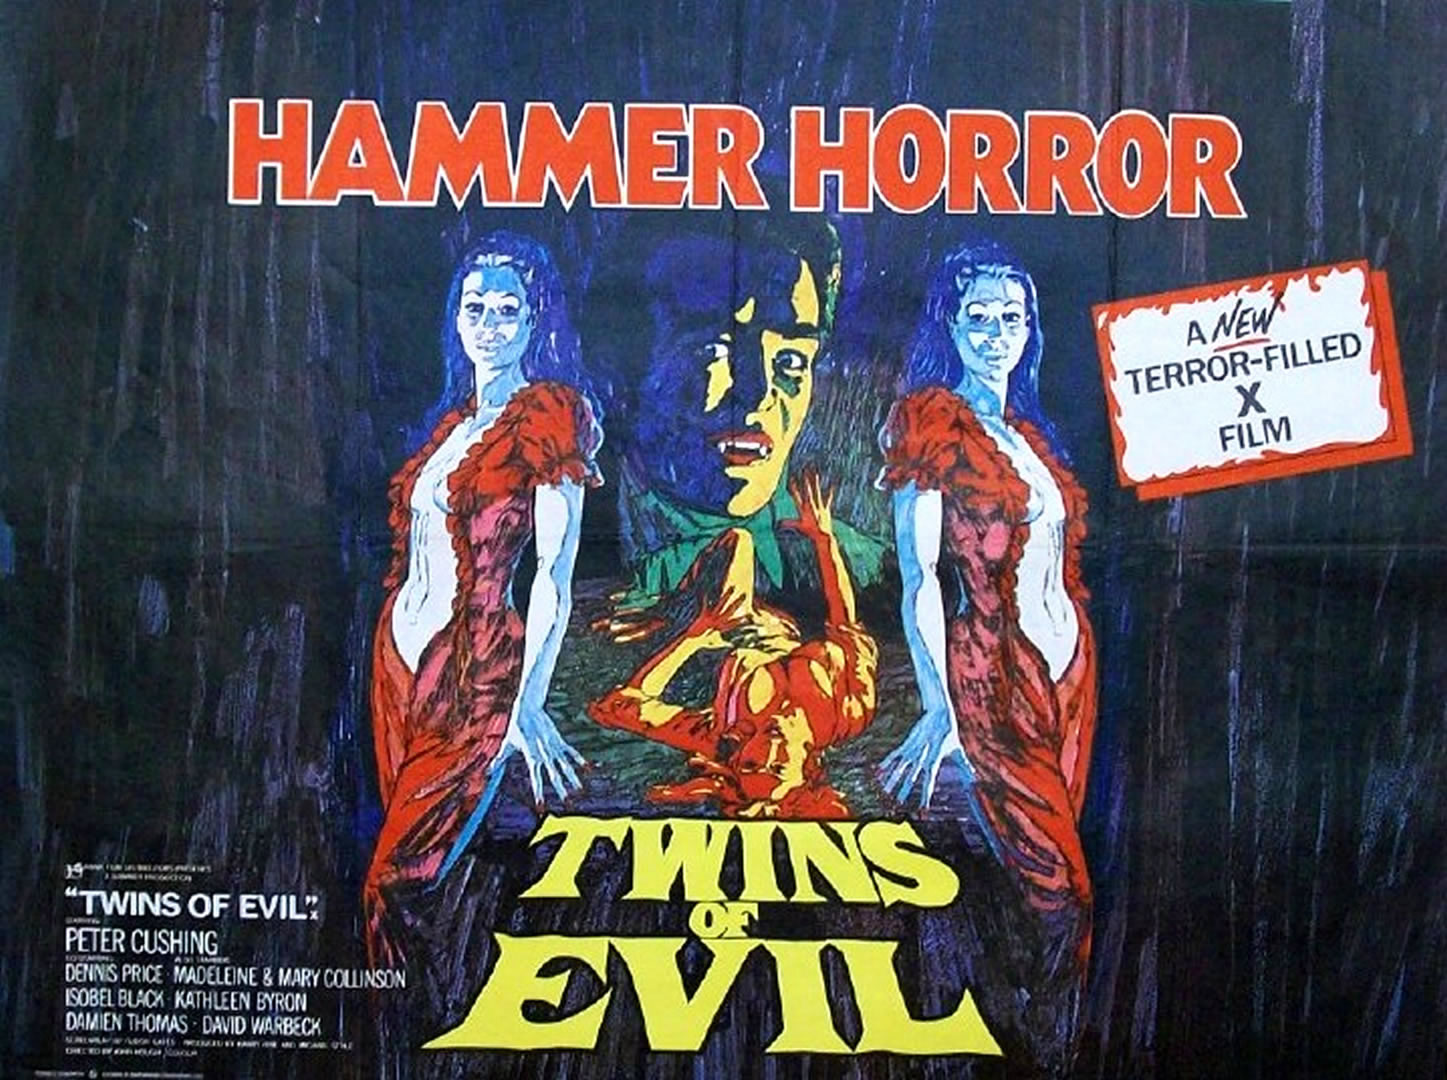 Are hammer horror films of movies abstract thinking